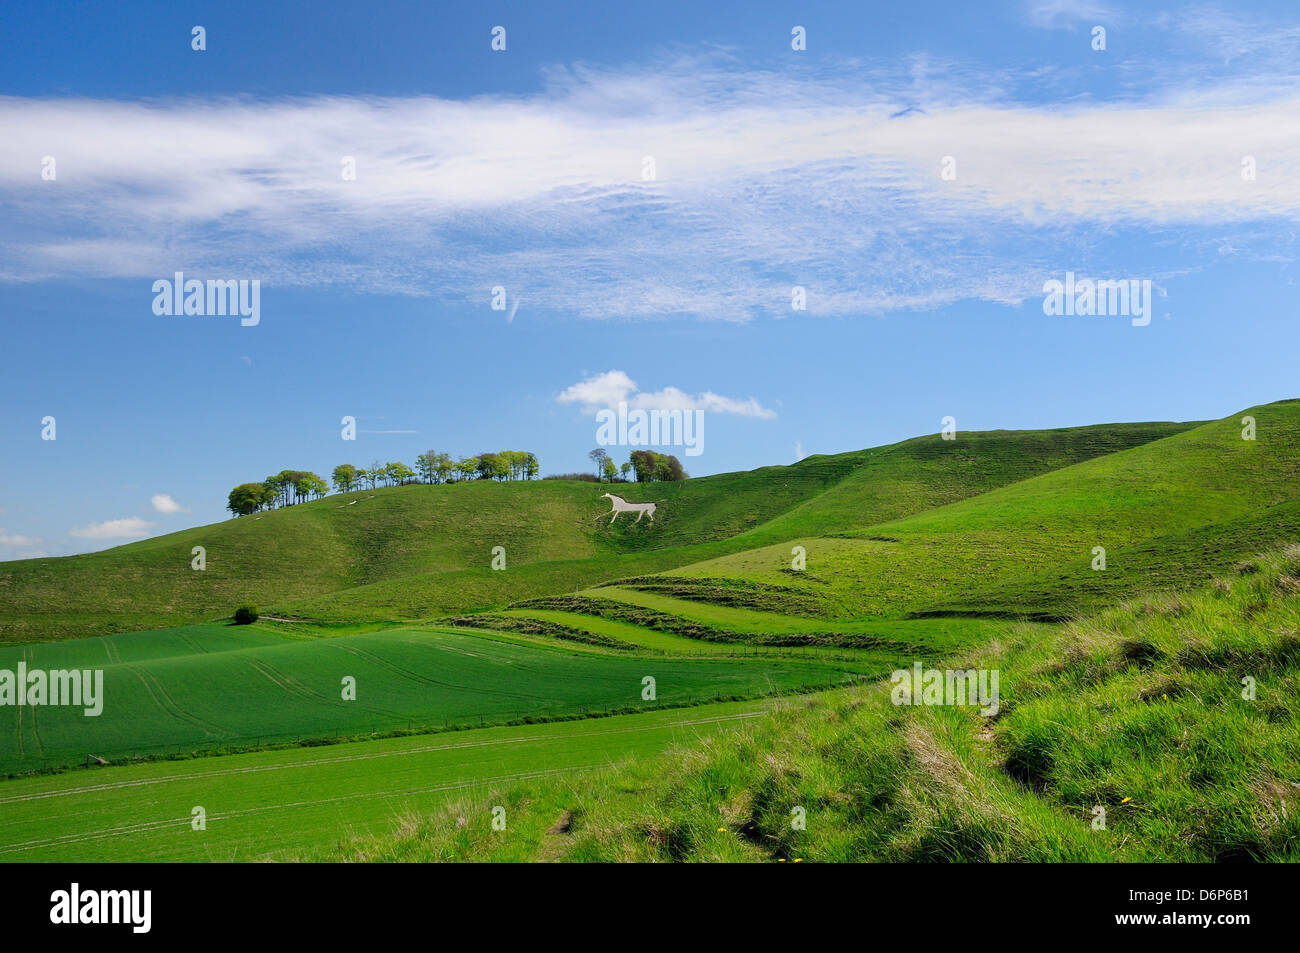 Cherhill white horse, first cut into chalk downland in 1780, Wiltshire, England, United Kingdom, Europe Stock Photo